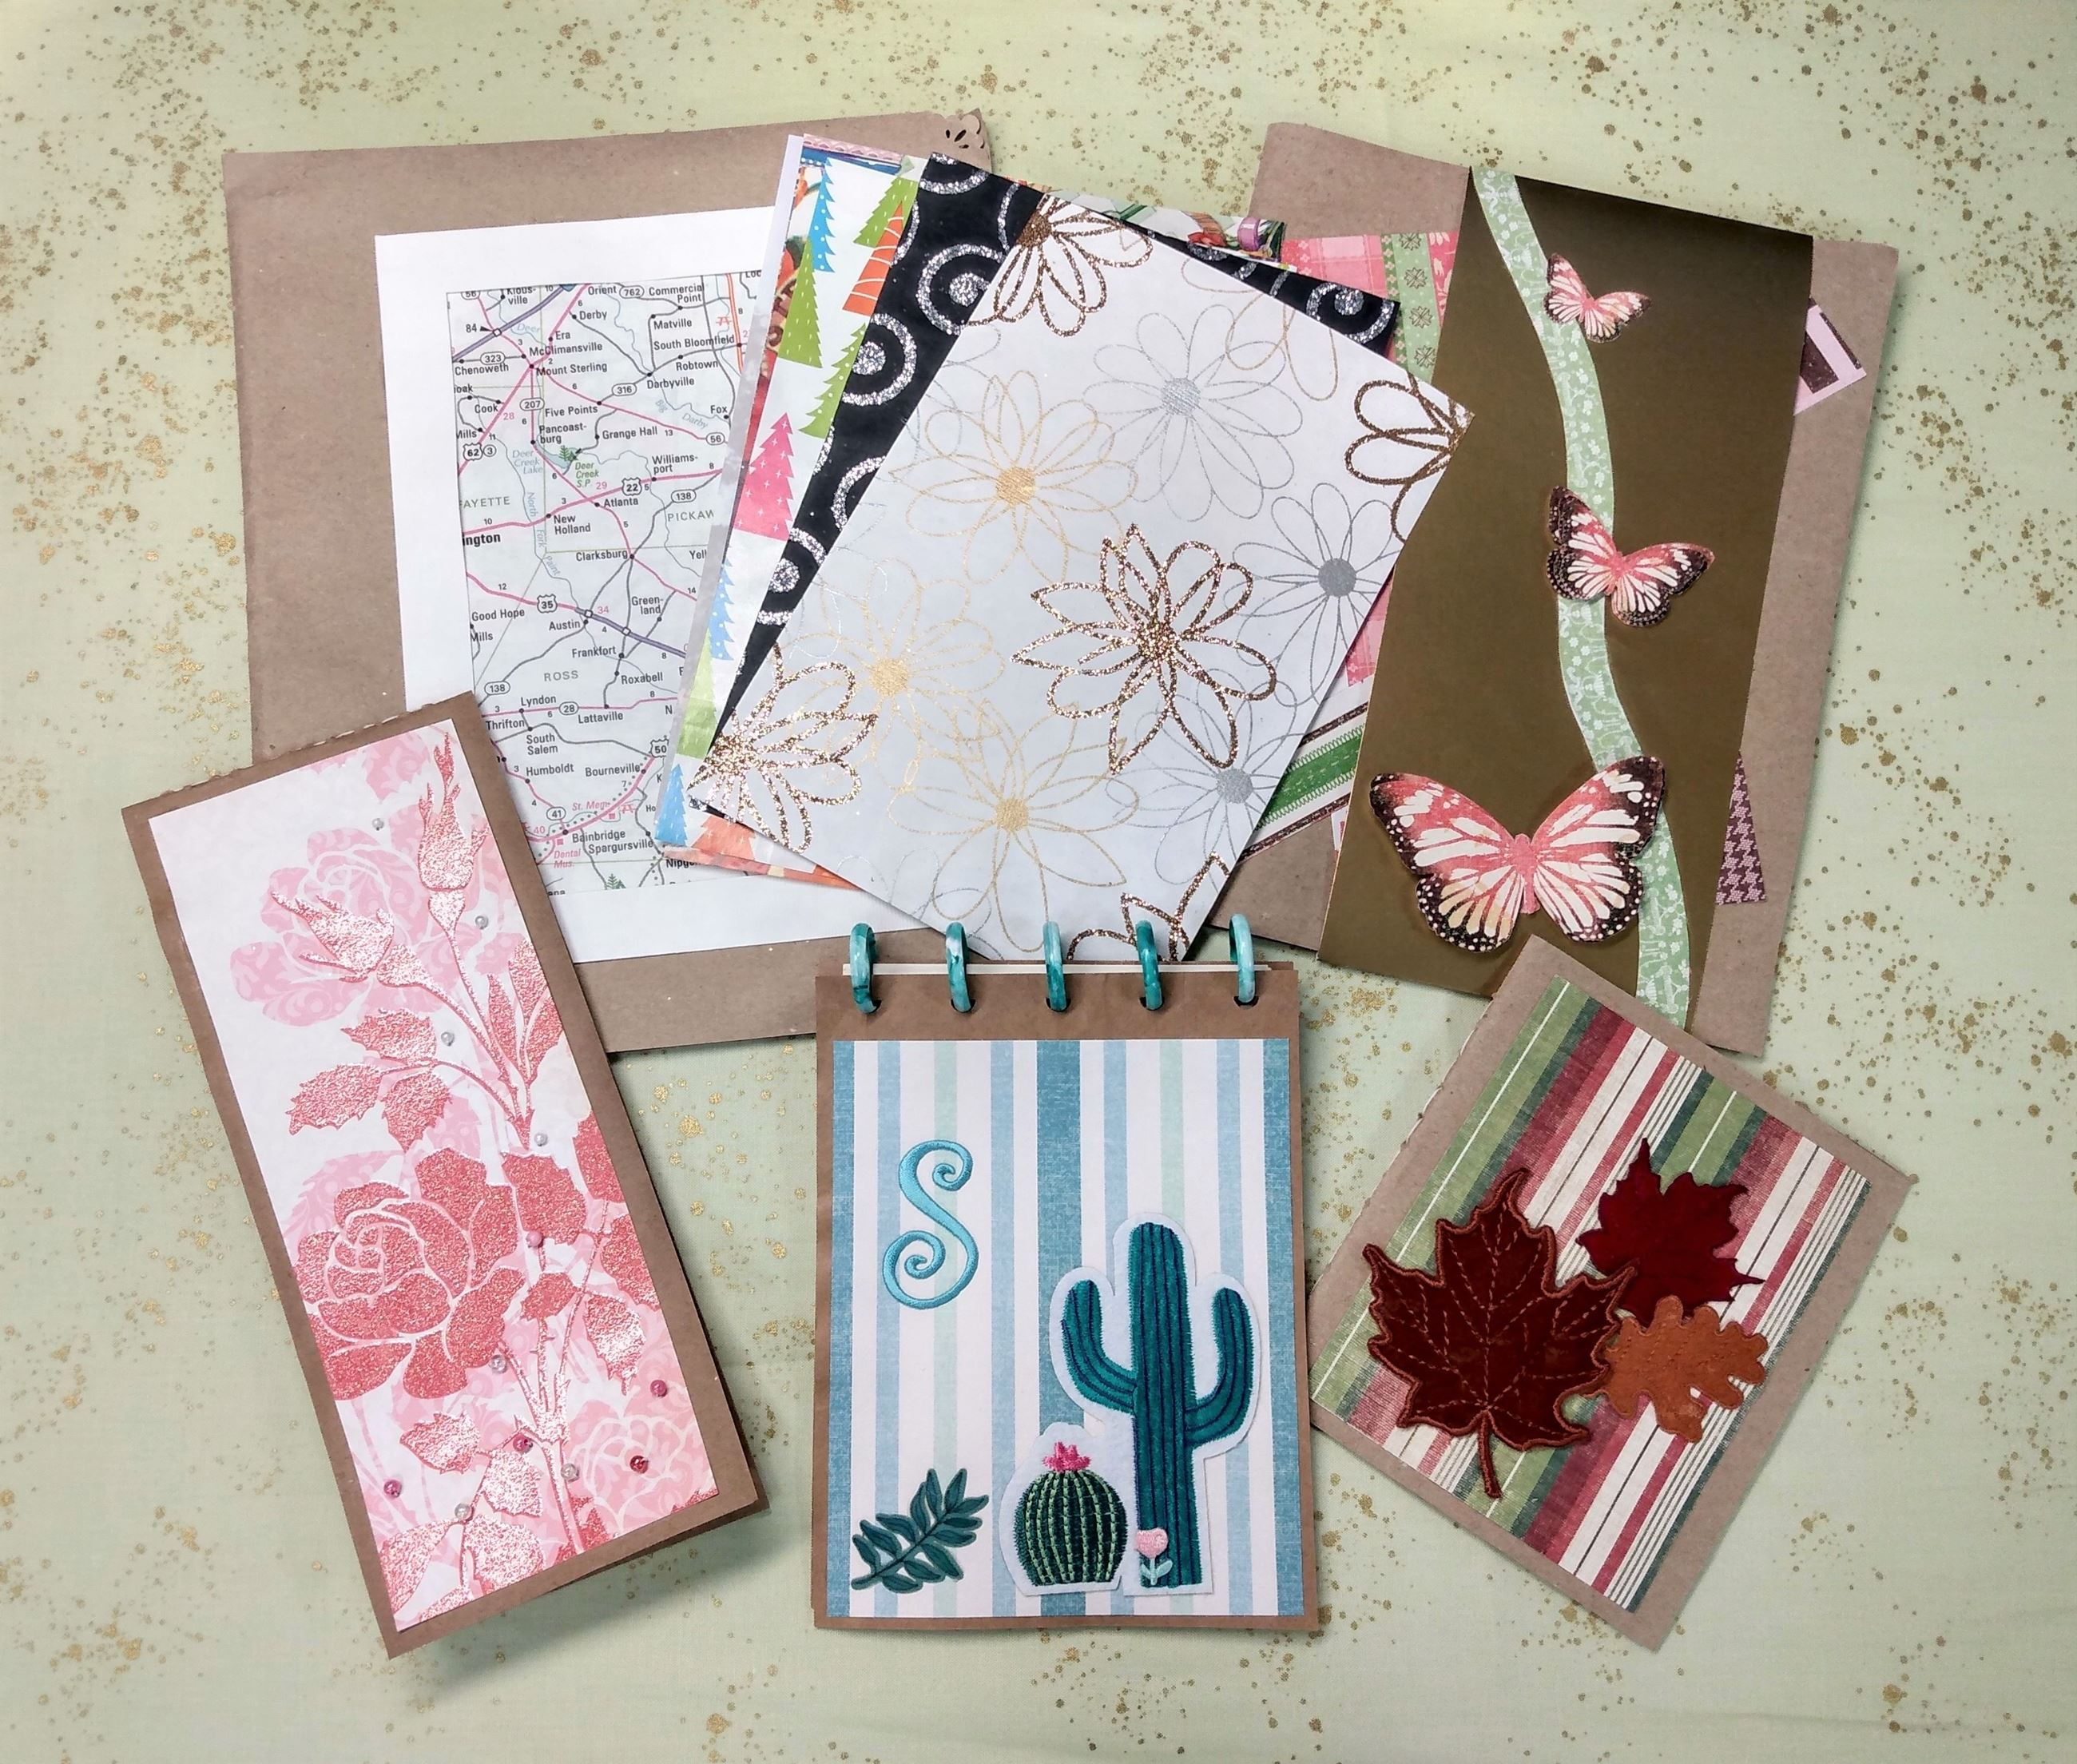 Create Your Own Mood Journal Craft